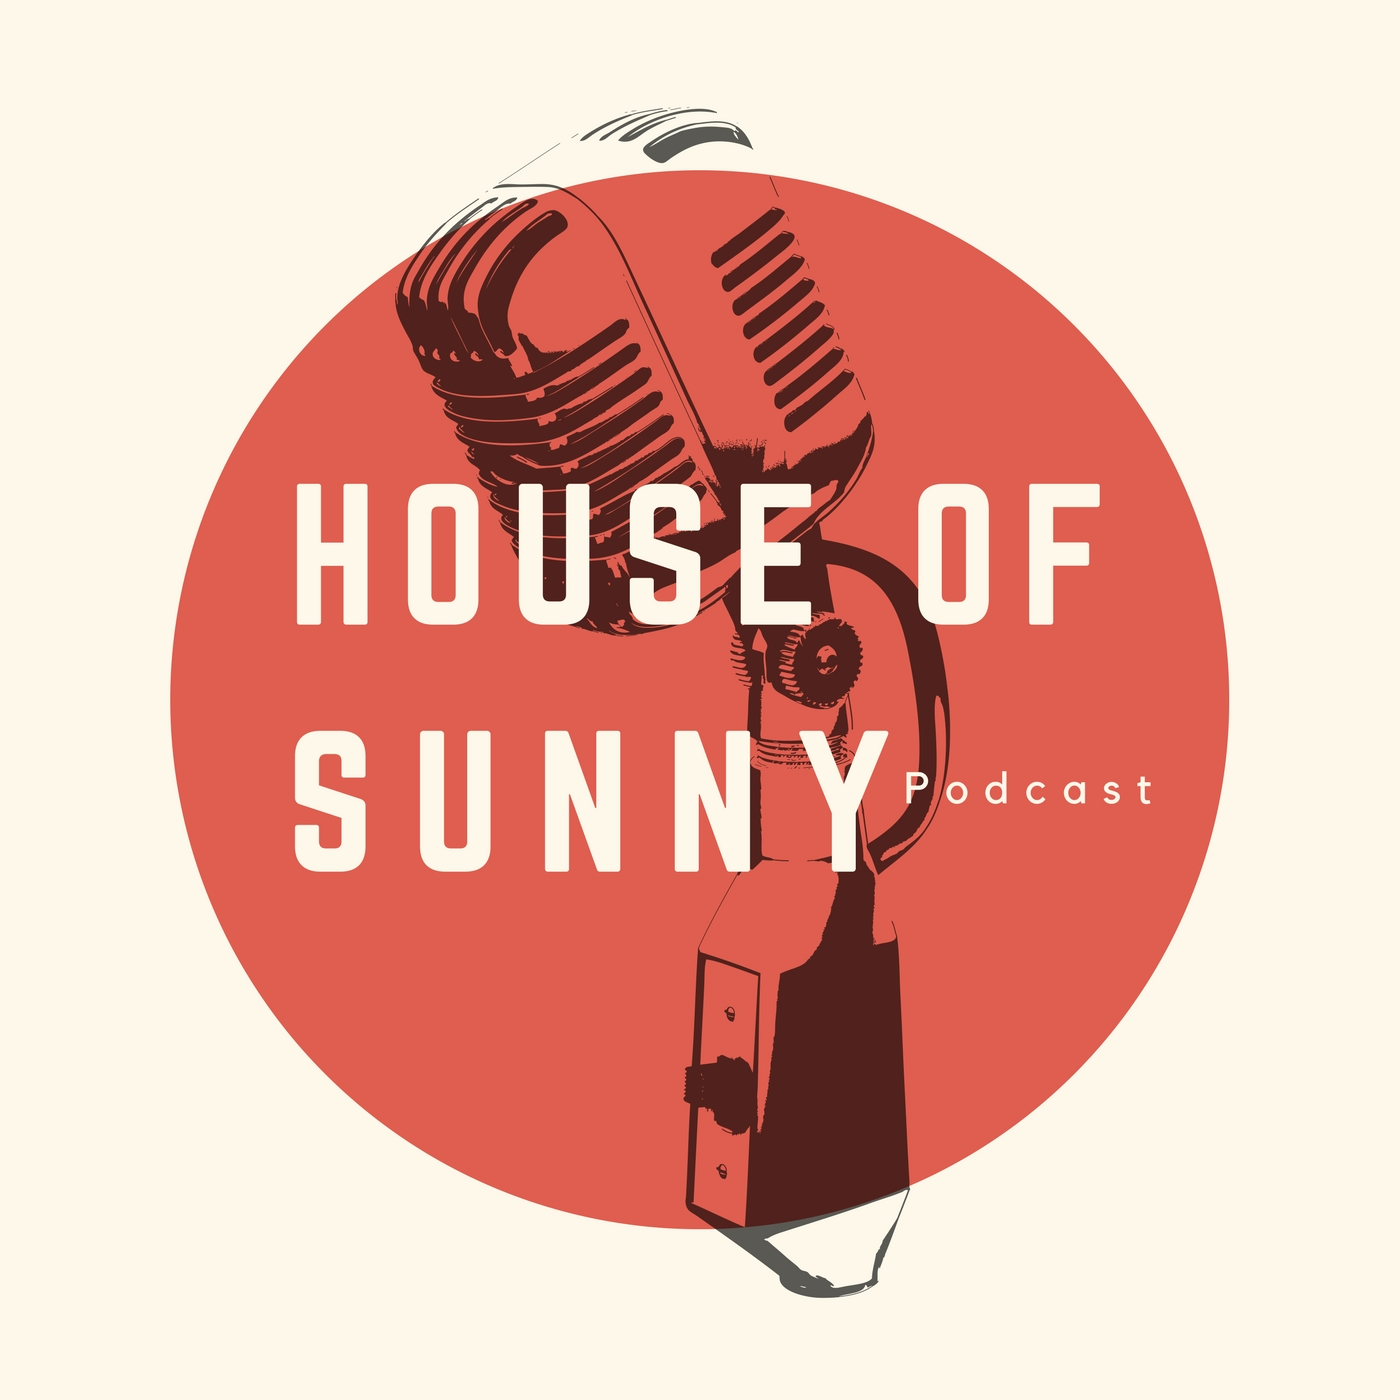 New House of Sunny Podcast Launch